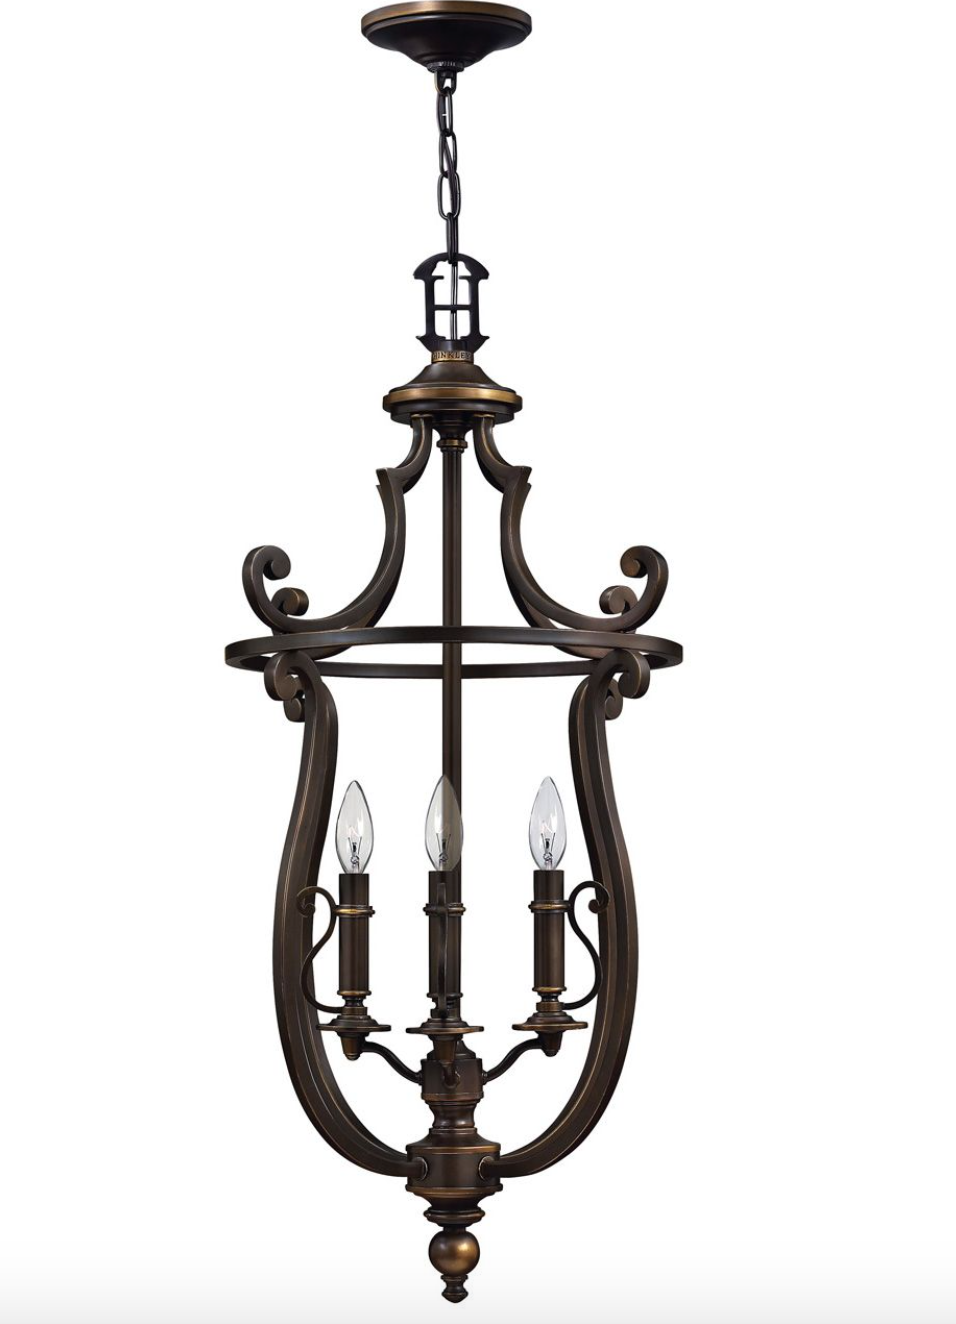 Plymouth Open Frame Chandelier 4254, 4258, 4259